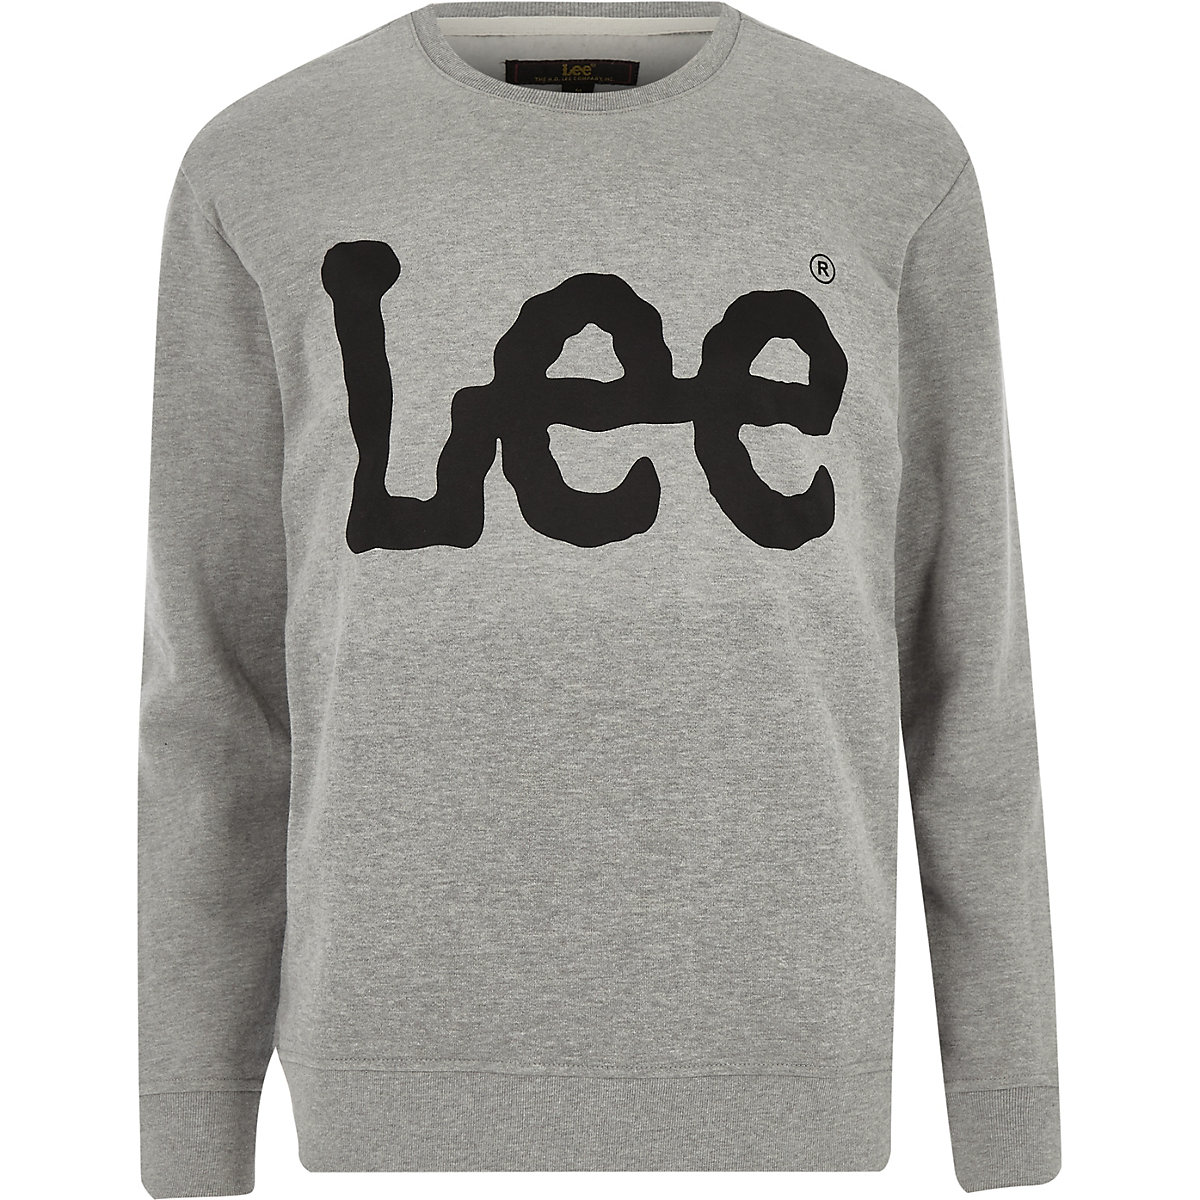 Lee grey logo print sweatshirt